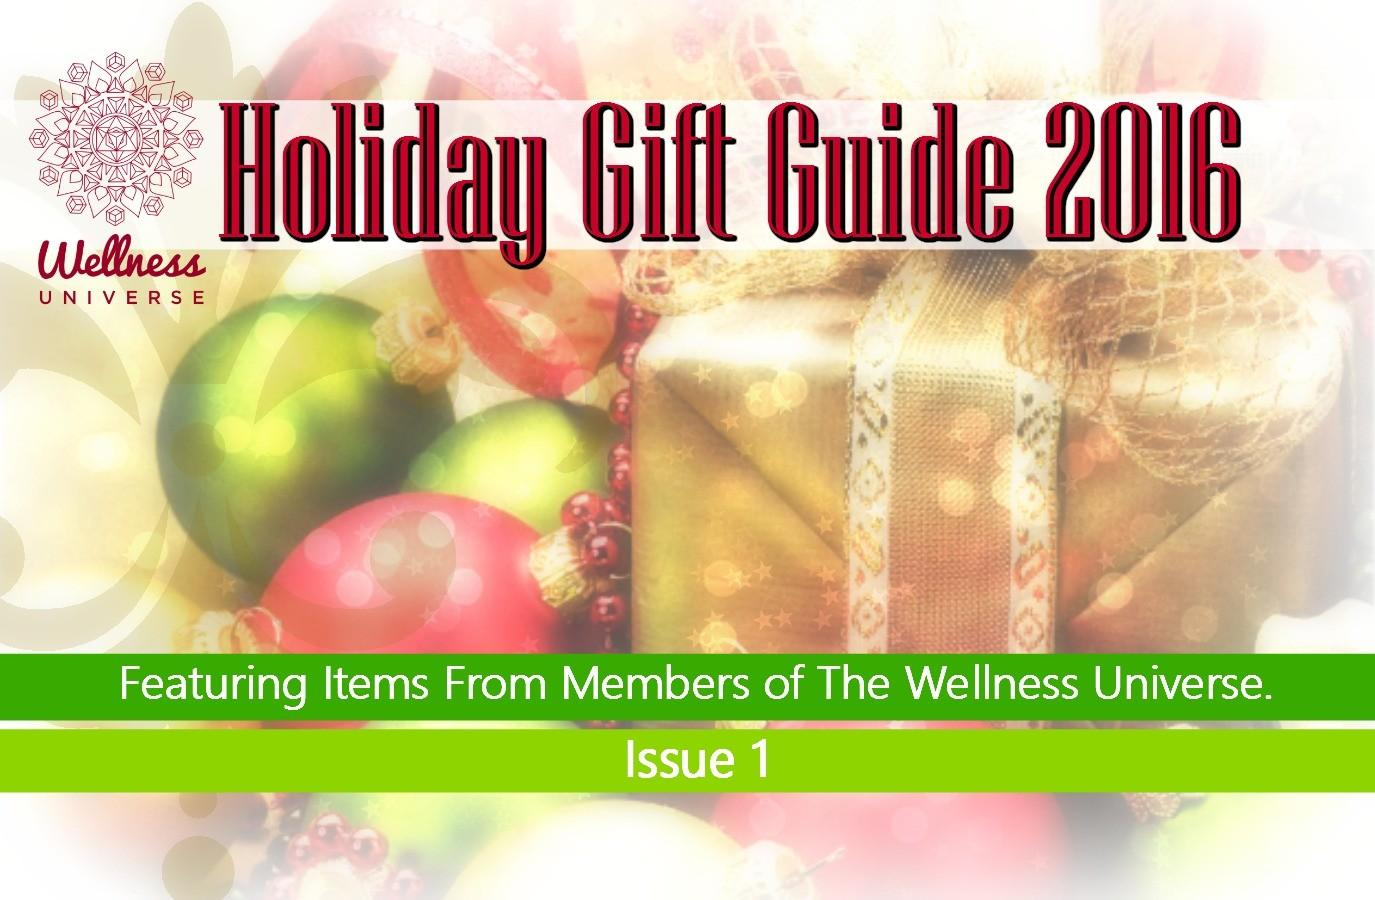 Wellness Universe Holiday Gift Guide 2016 Issue